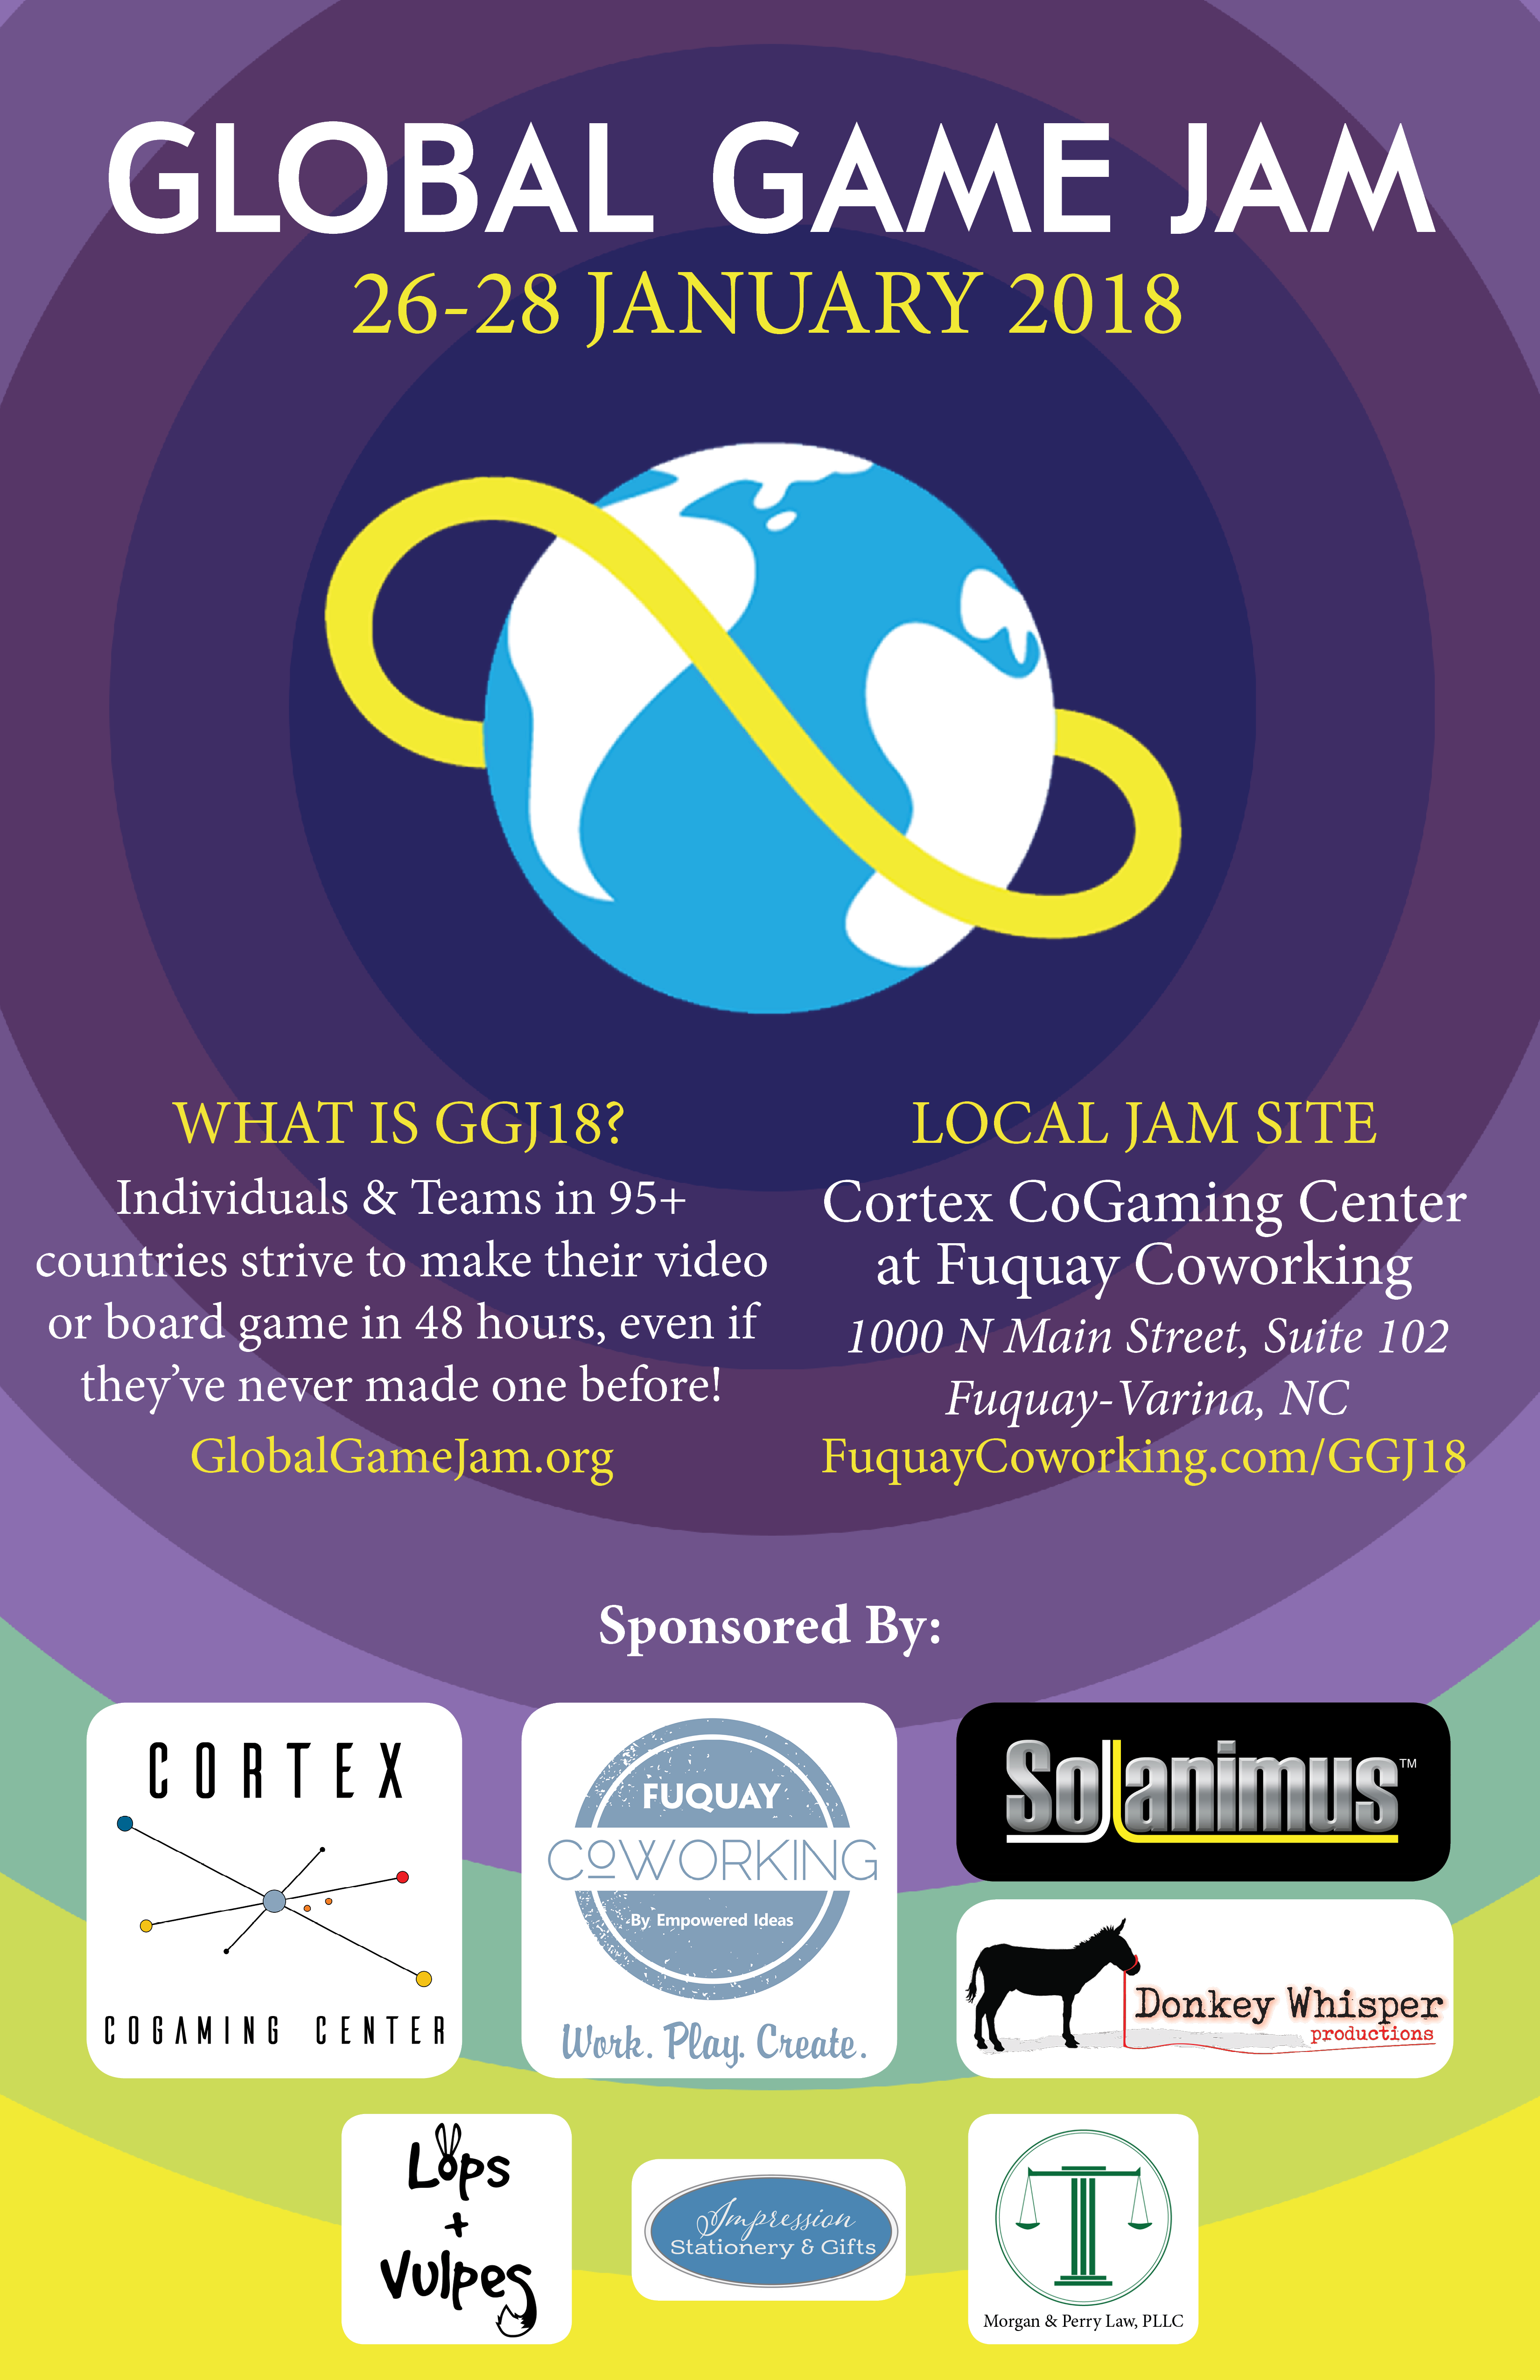 Global Game Jam 2018 at Fuquay Coworking and Cortex CoGaming Center